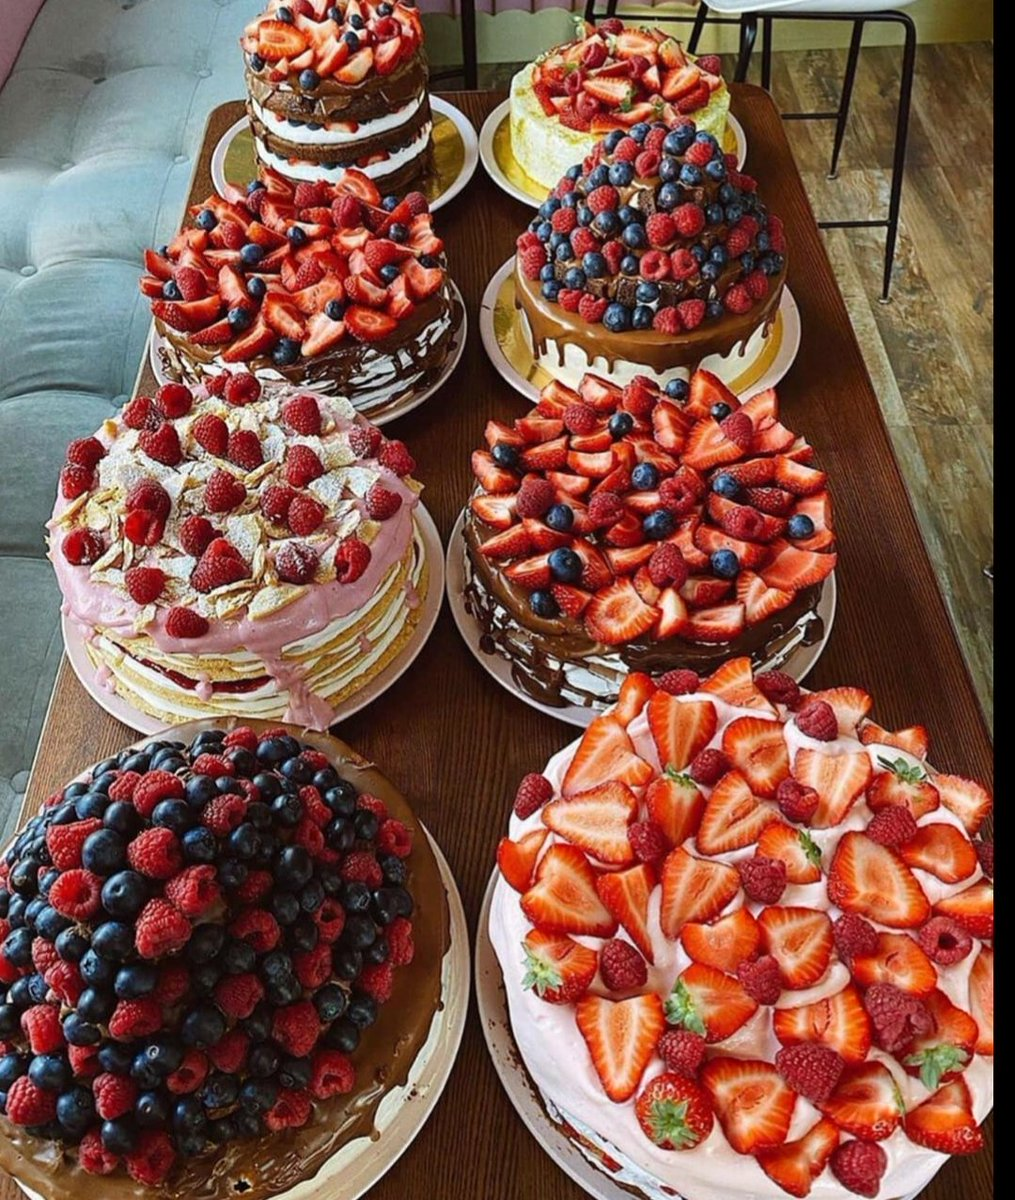 Dream Berries Cake Yes Or No?? #Foodie #food pic.twitter.com/bnBmT4BfXR